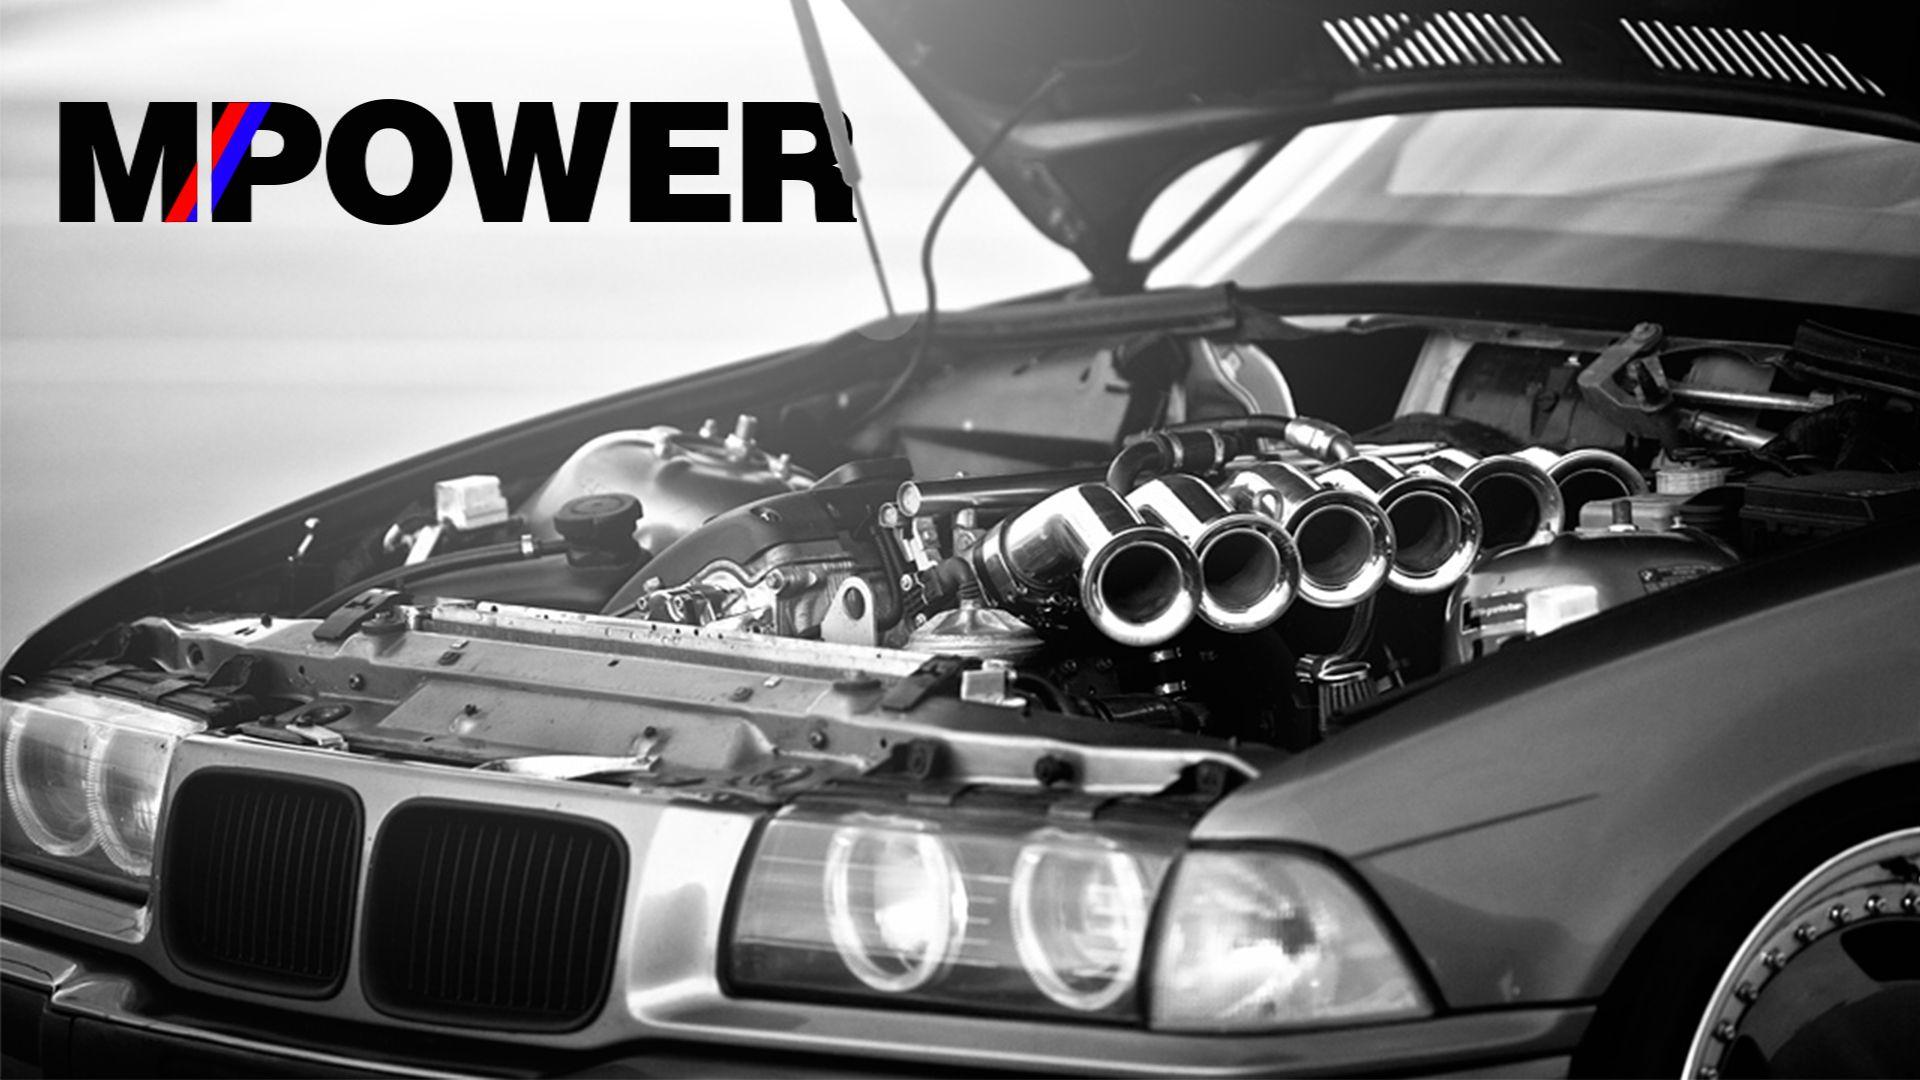 Wallpapers Bmw M Power High Definition BMW Wallpapers M Power